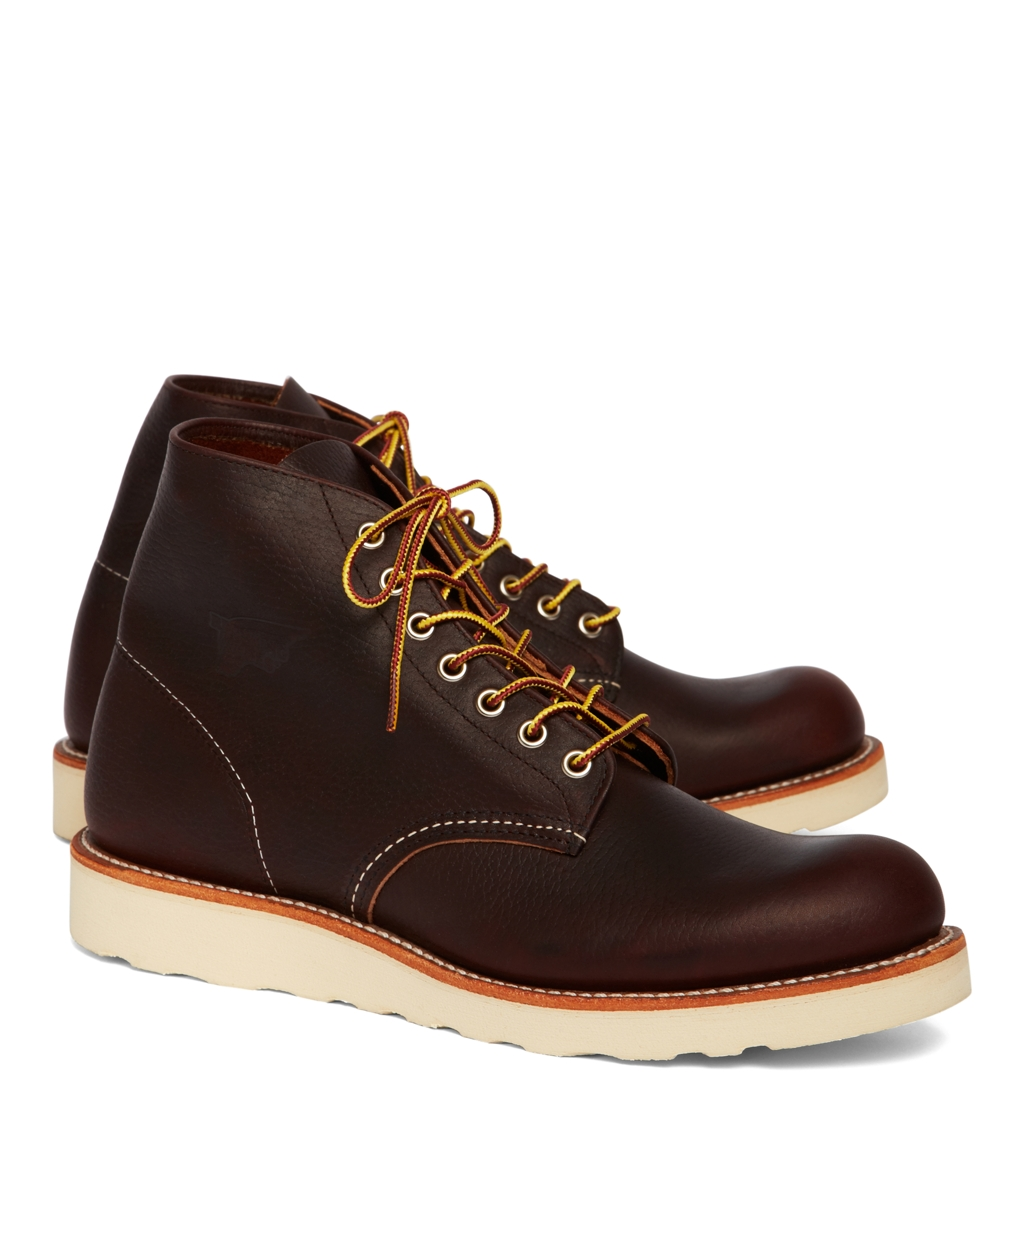 Brooks Brothers Shoes Review